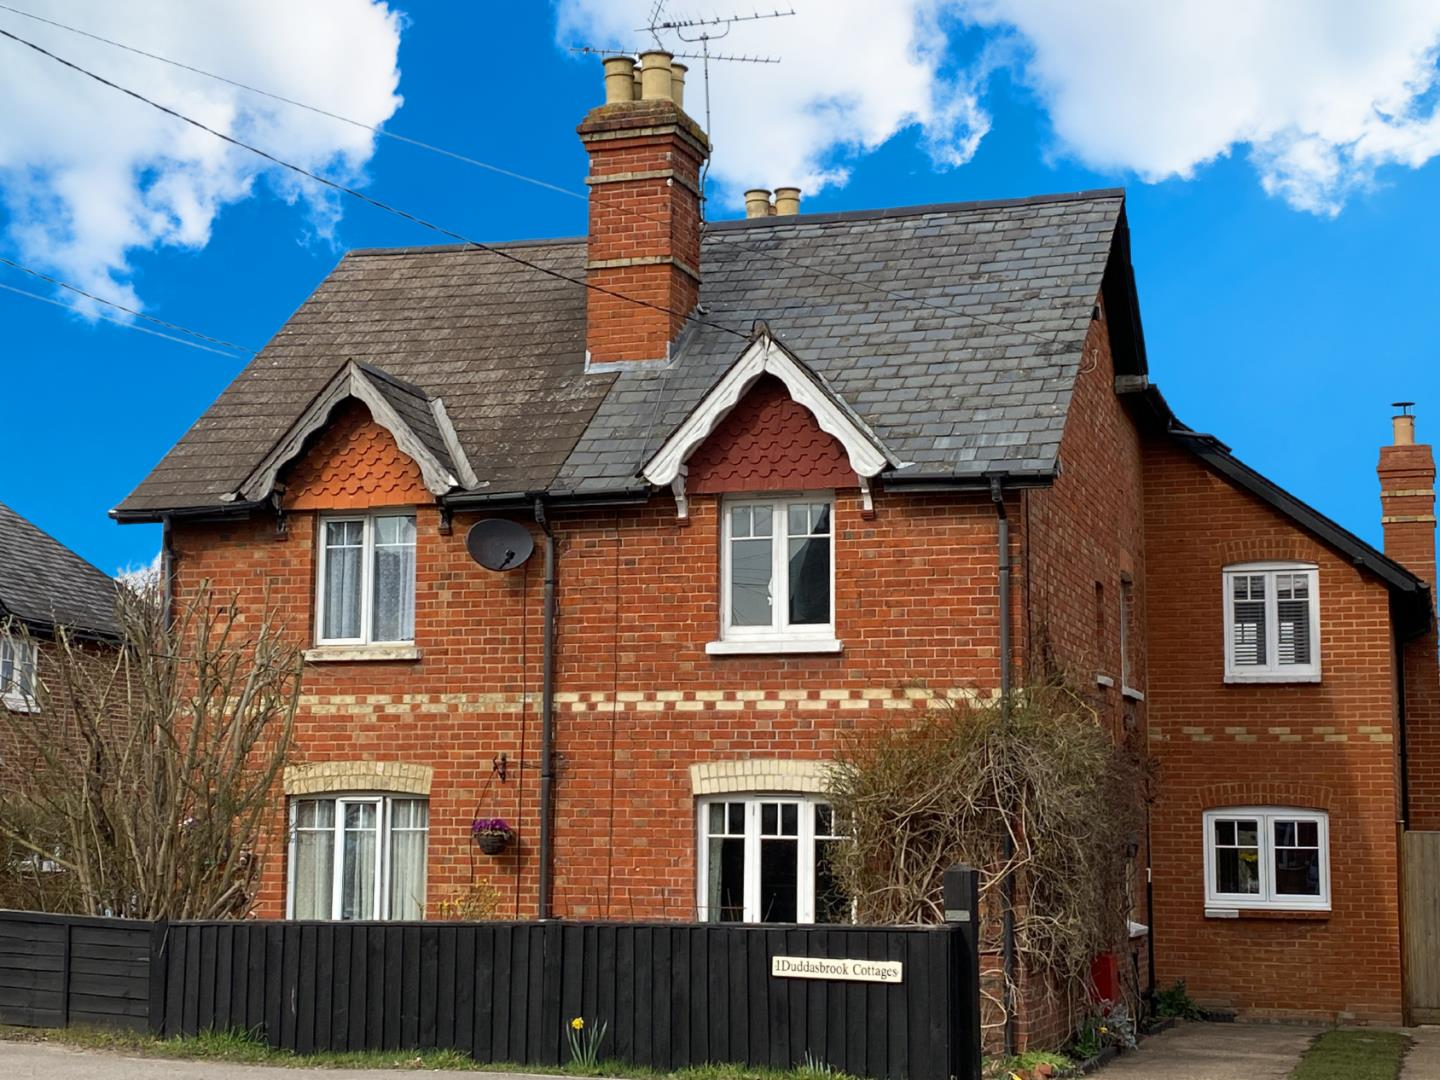 3 bed house for sale, GU46